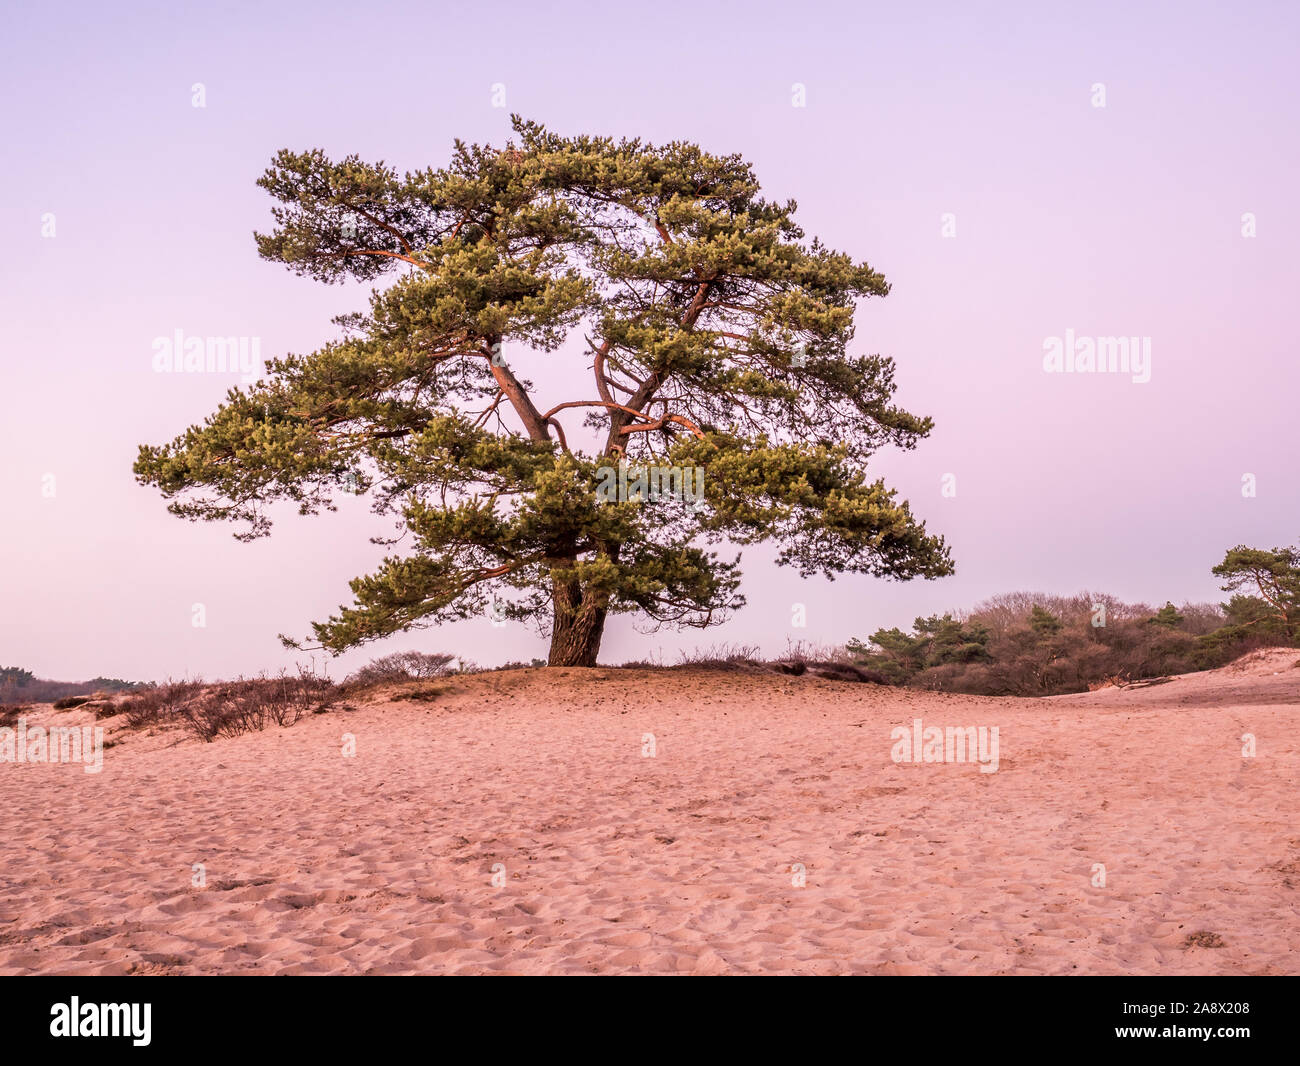 Solitary Scots pine tree, Pinus sylvestris, in sand dunes of heathland at dusk, Goois Nature Reserve, Netherlands Stock Photo